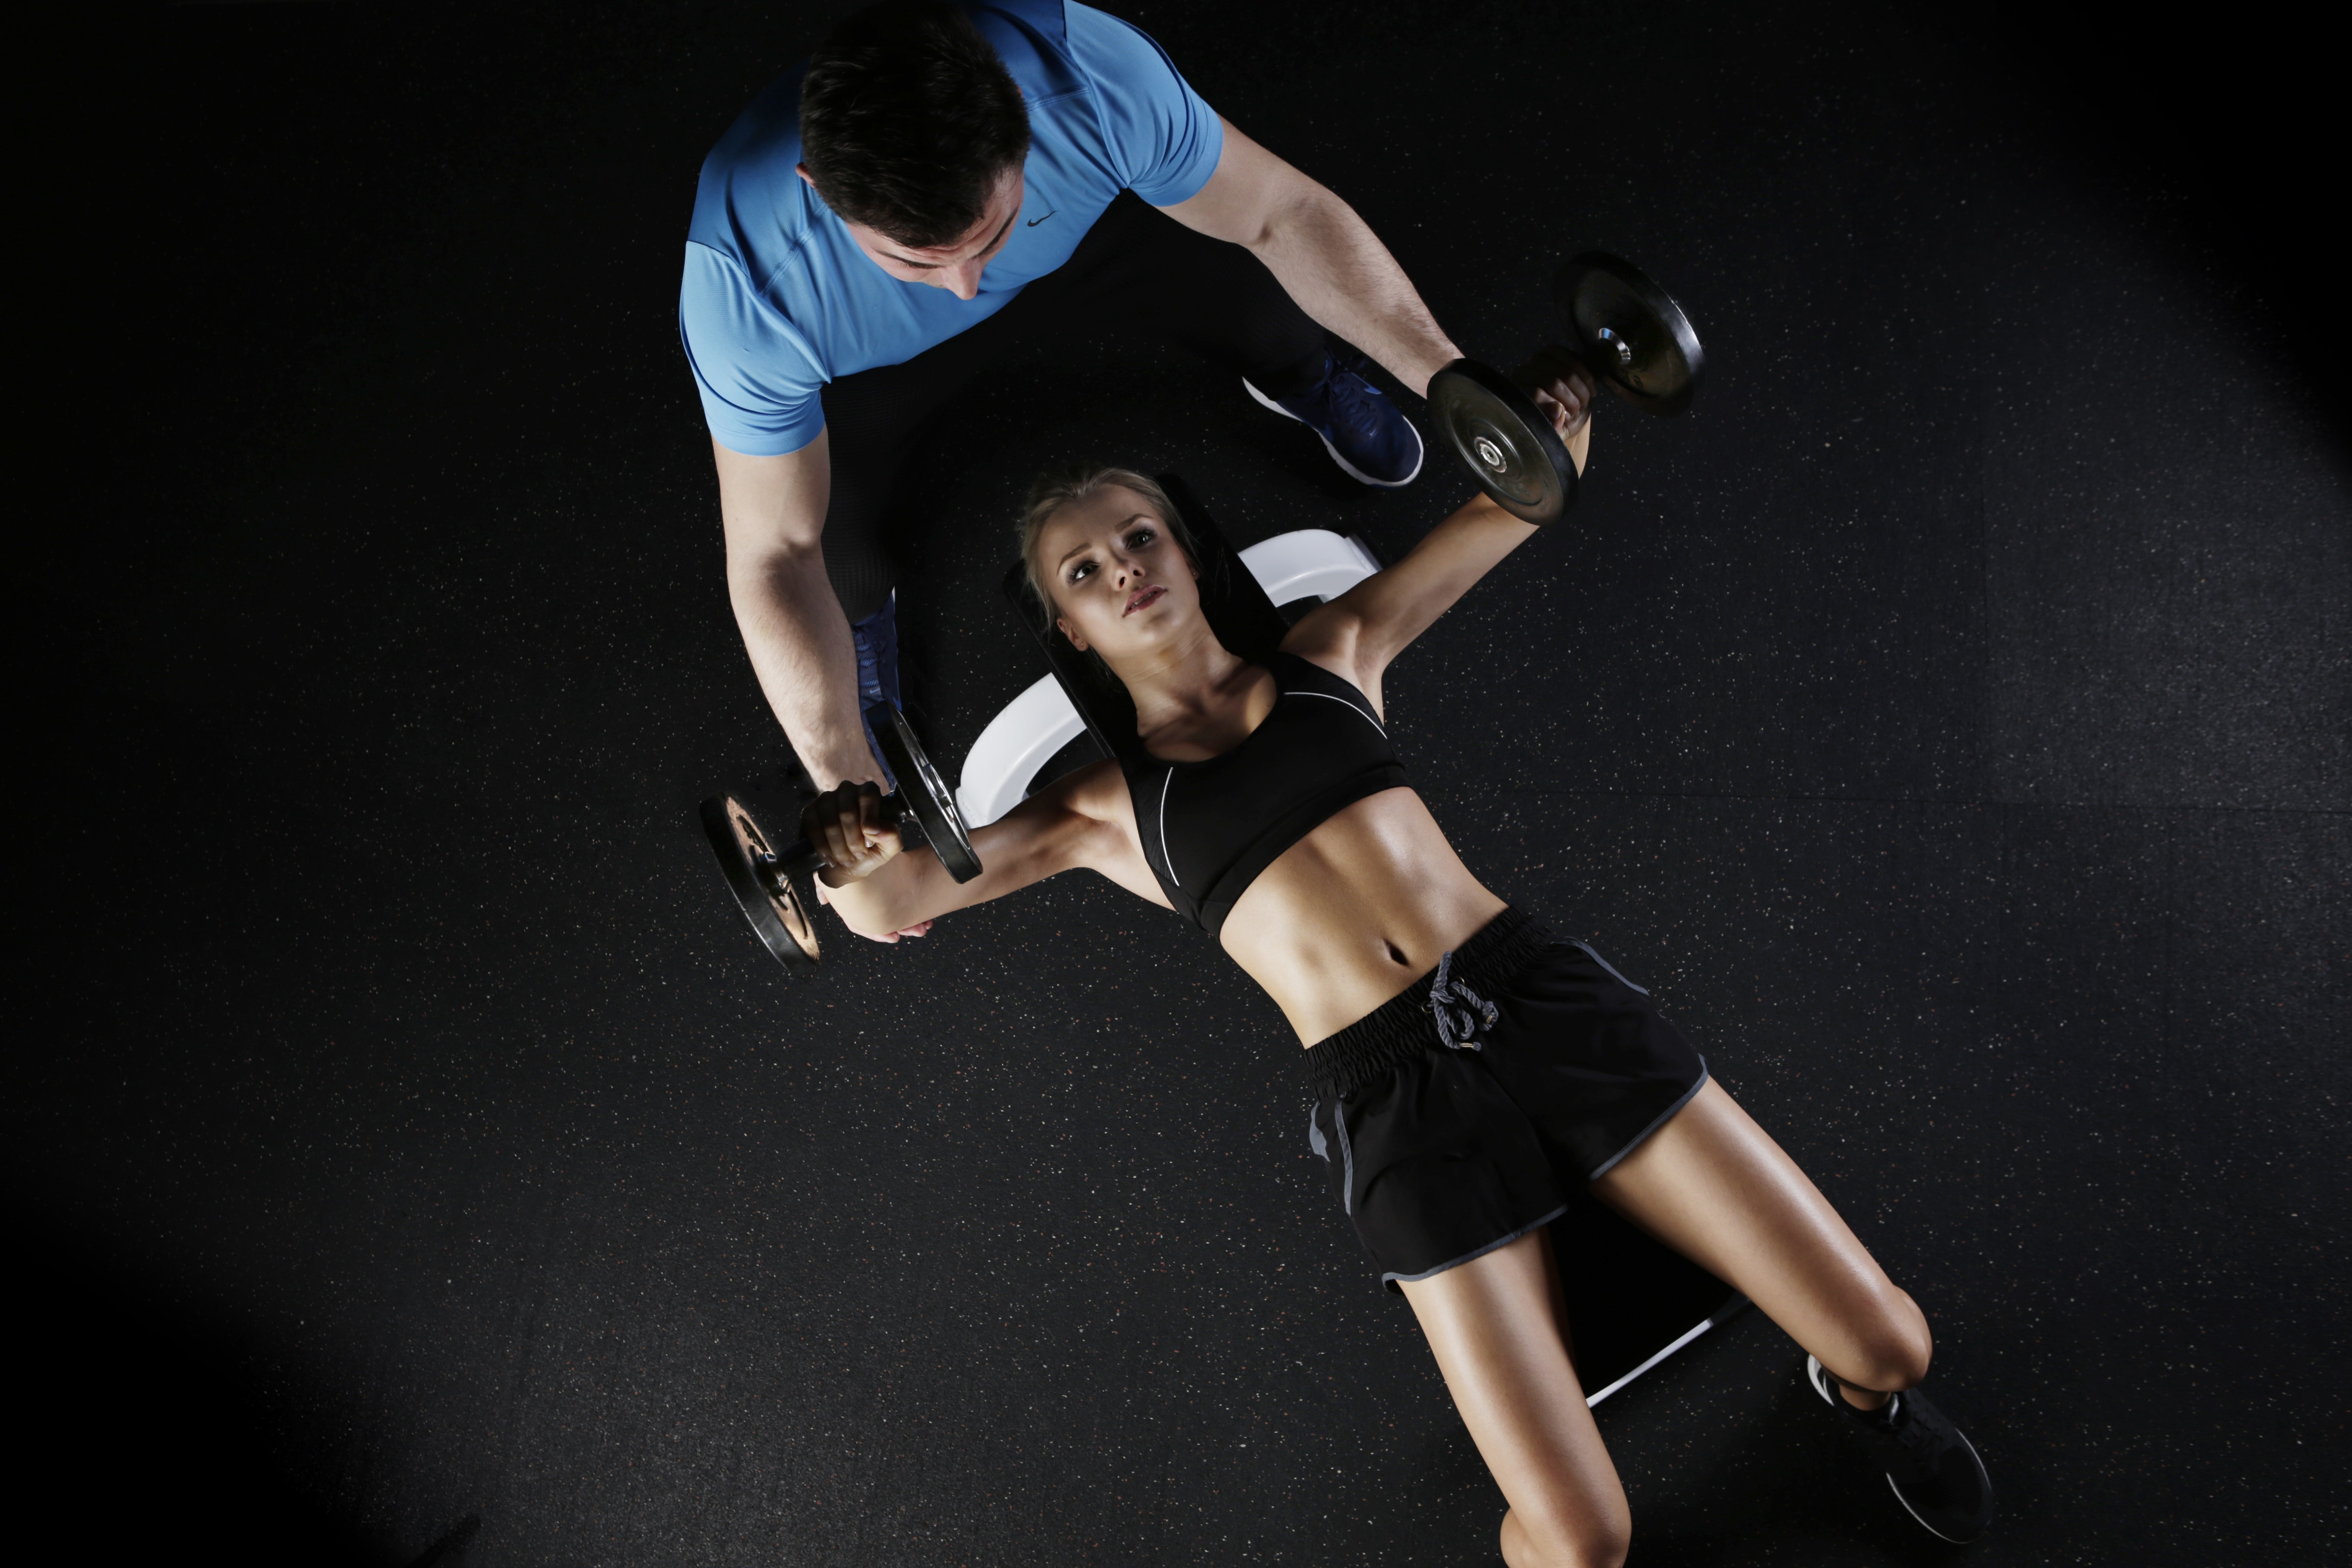 Working out with a trainer